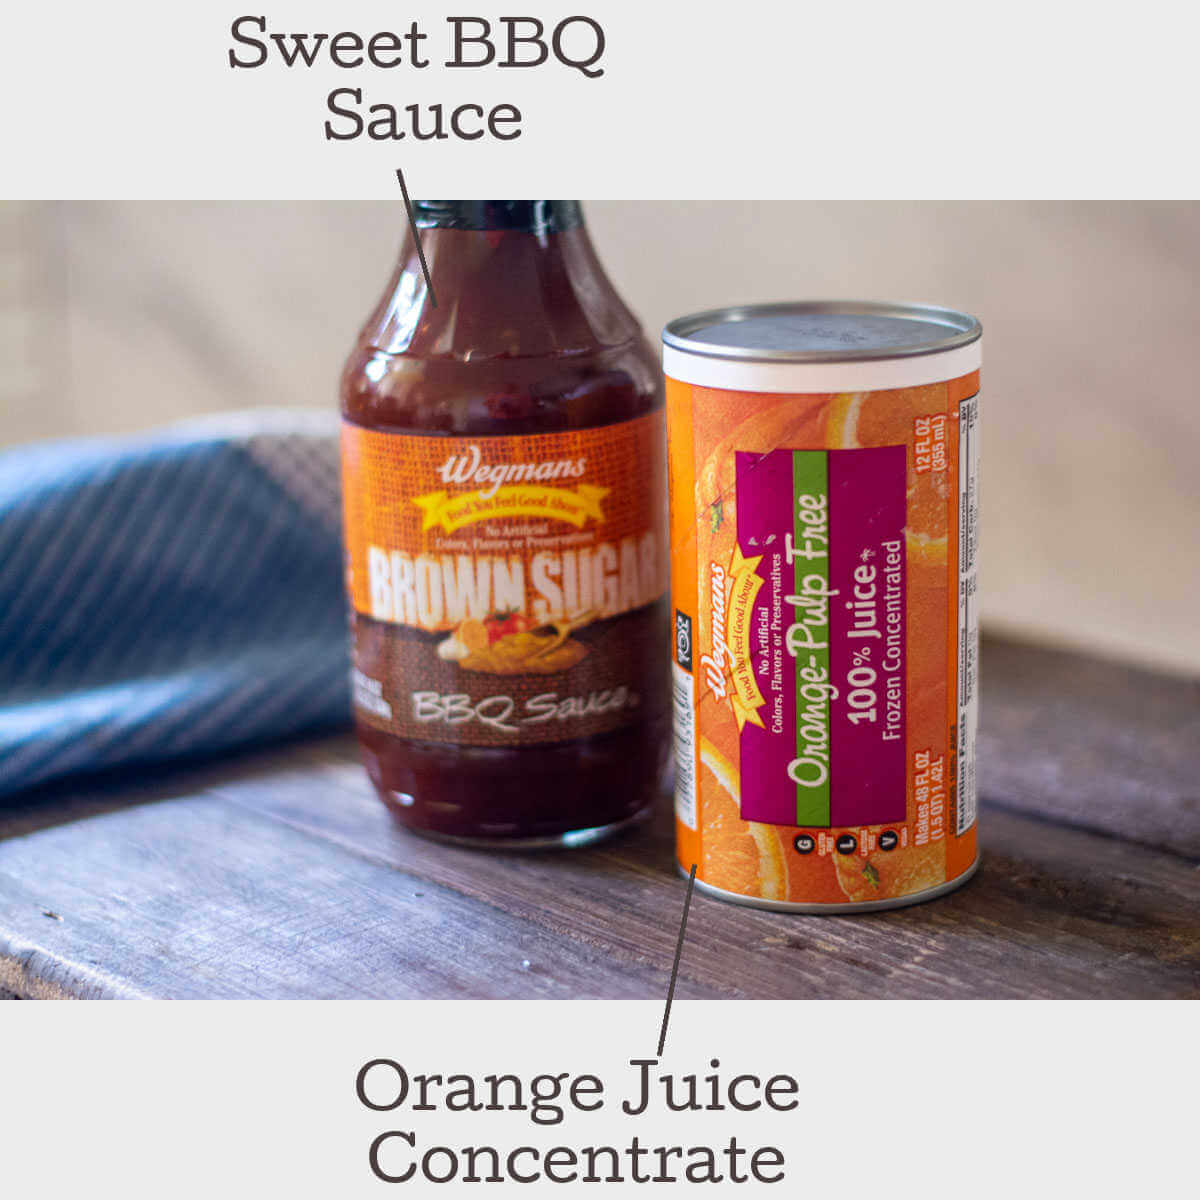 orange juice and BBQ sauce on a cutting board to show the ingredients.